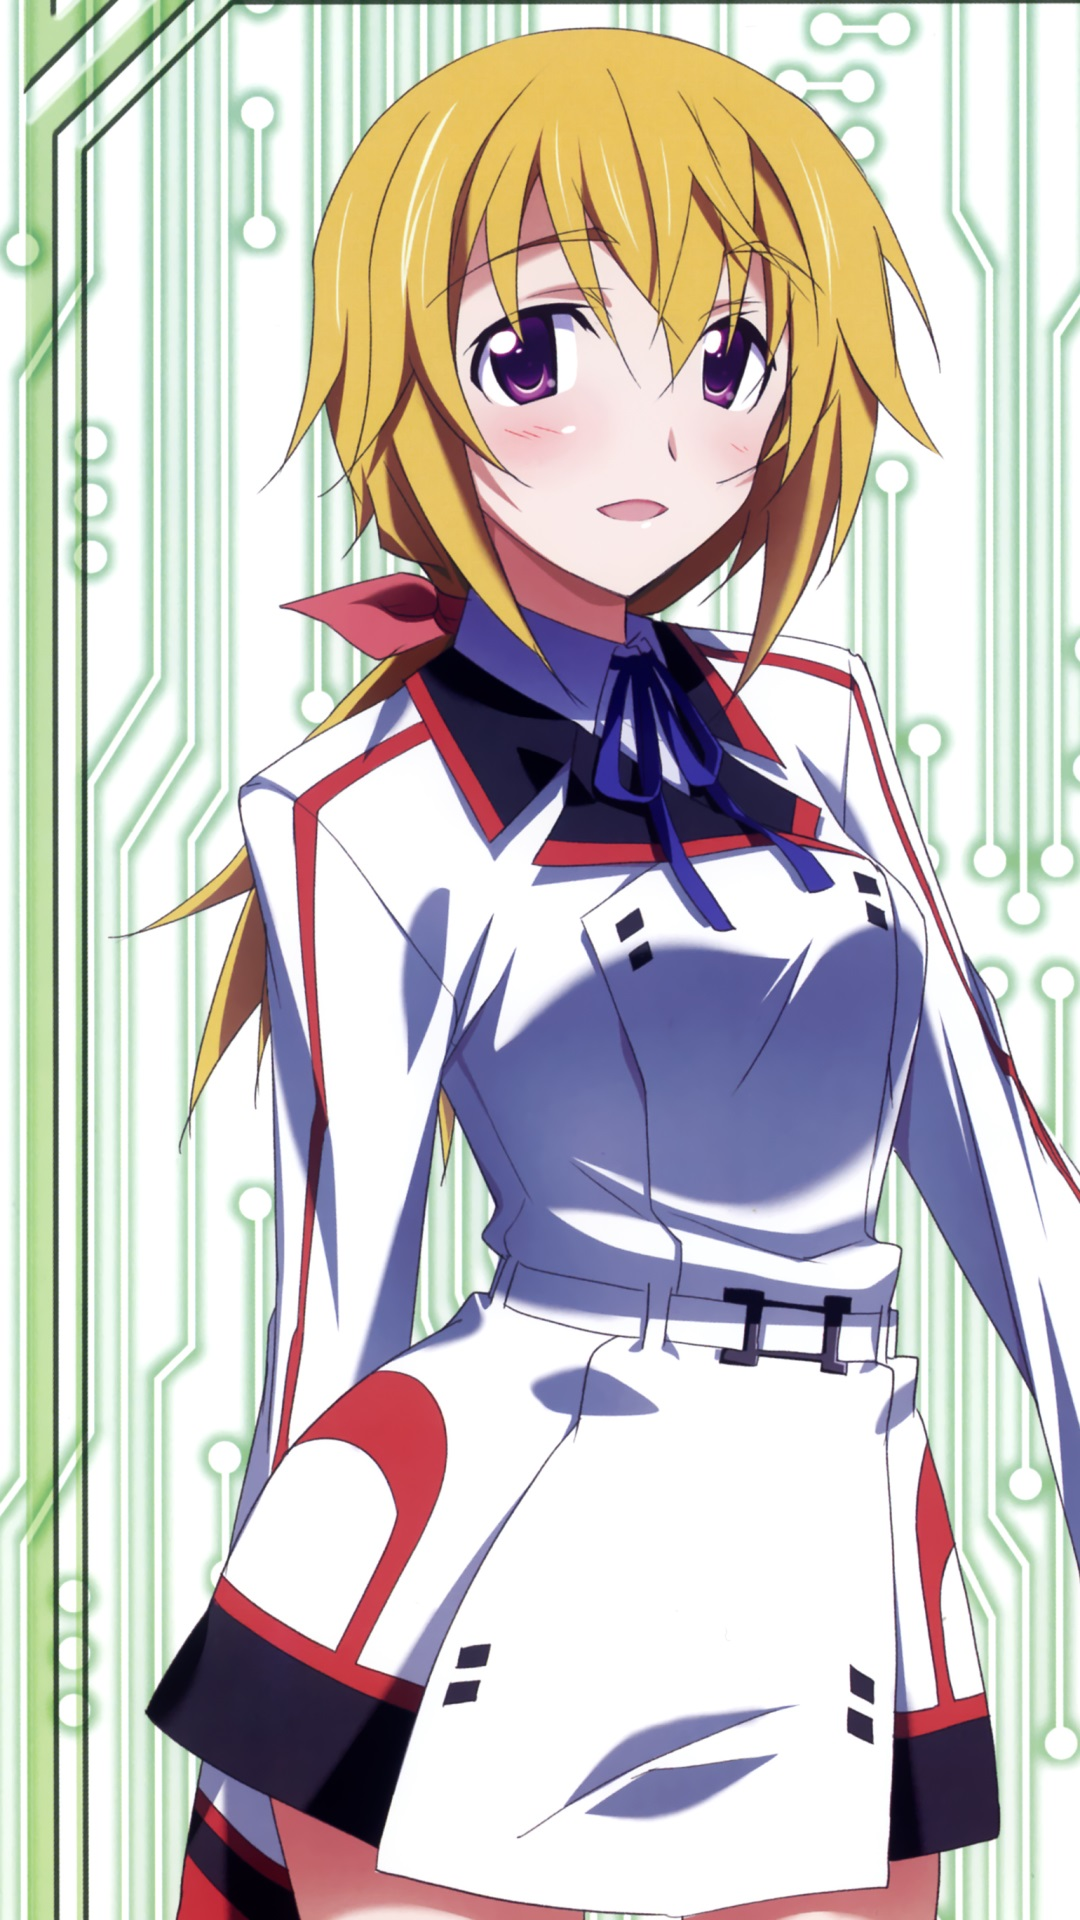 Infinite stratos charlotte dunois samsung galaxy s4 - Anime wallpaper hd for android phones ...